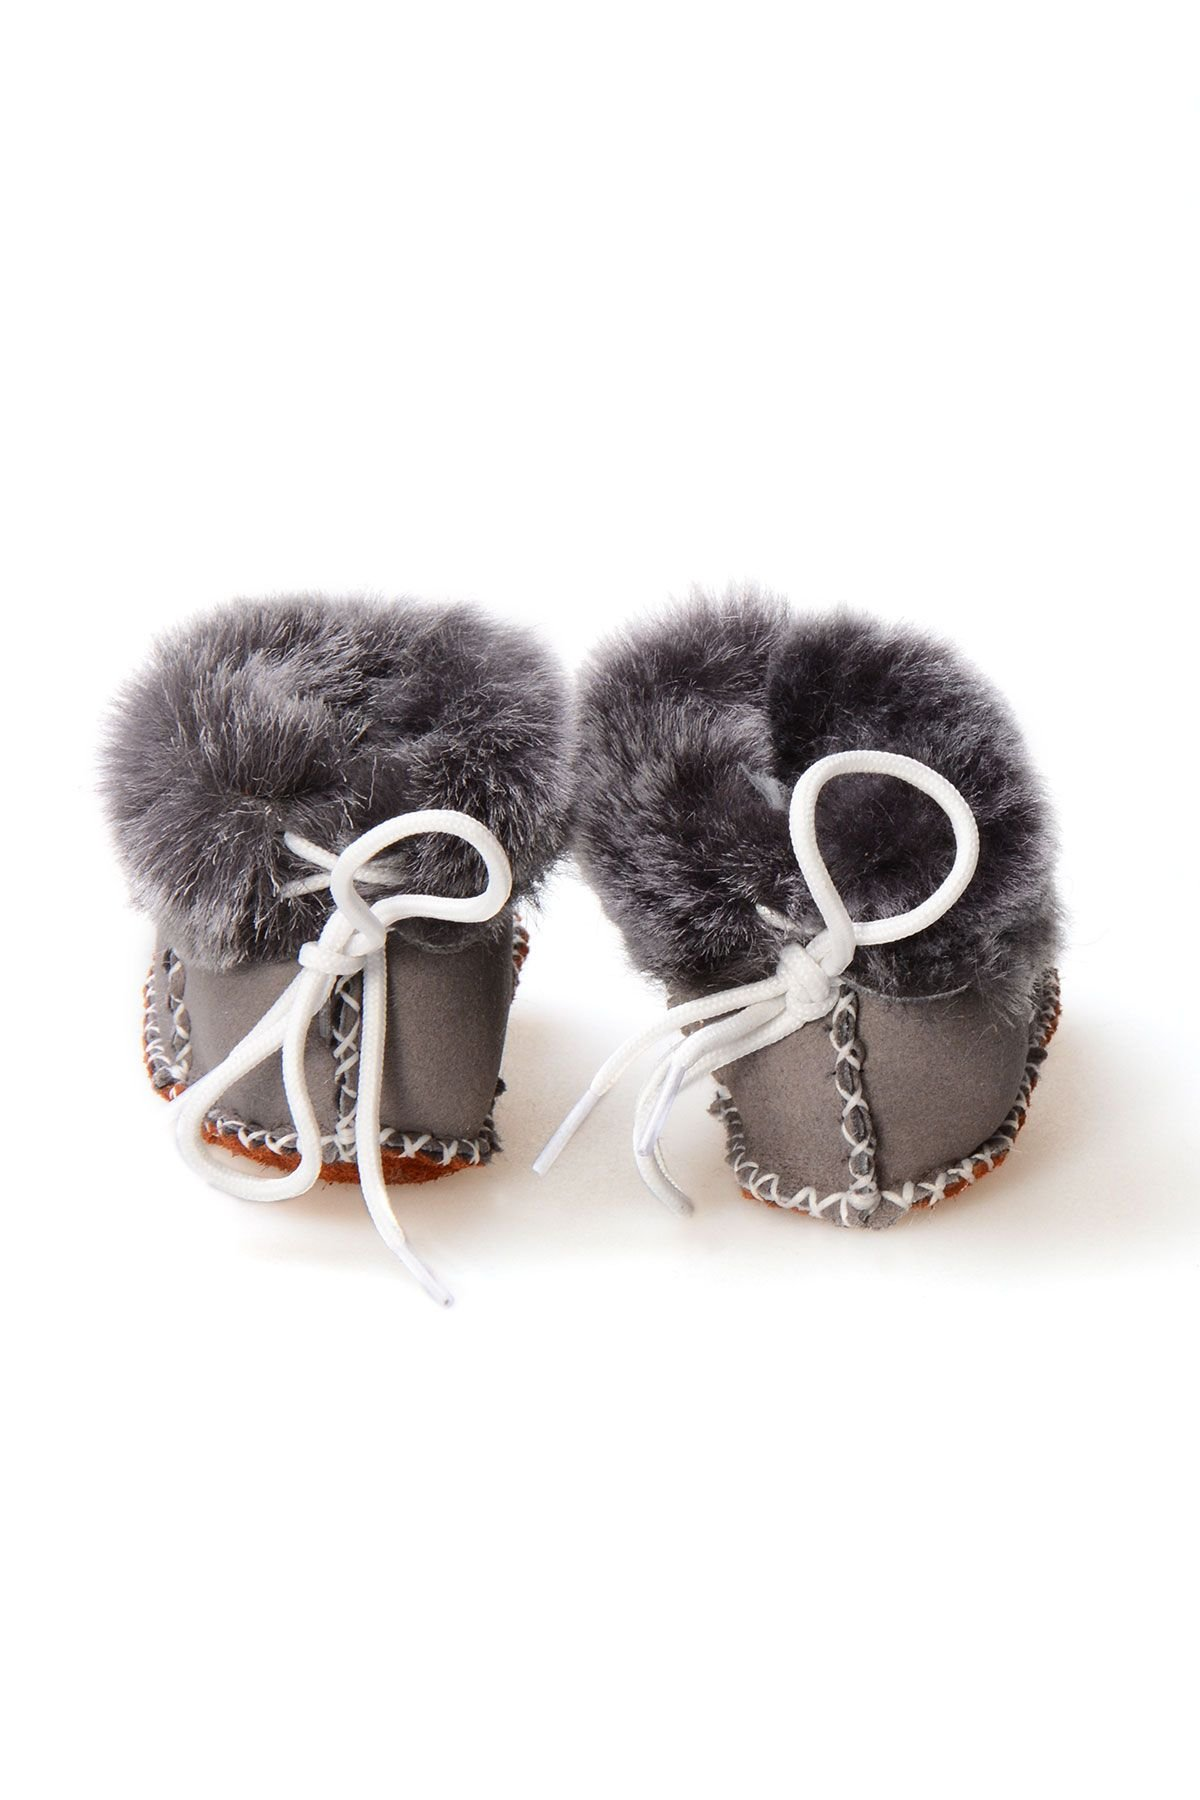 Pegia Babies Laced Shearling Booties 141105 Anthracite-colored